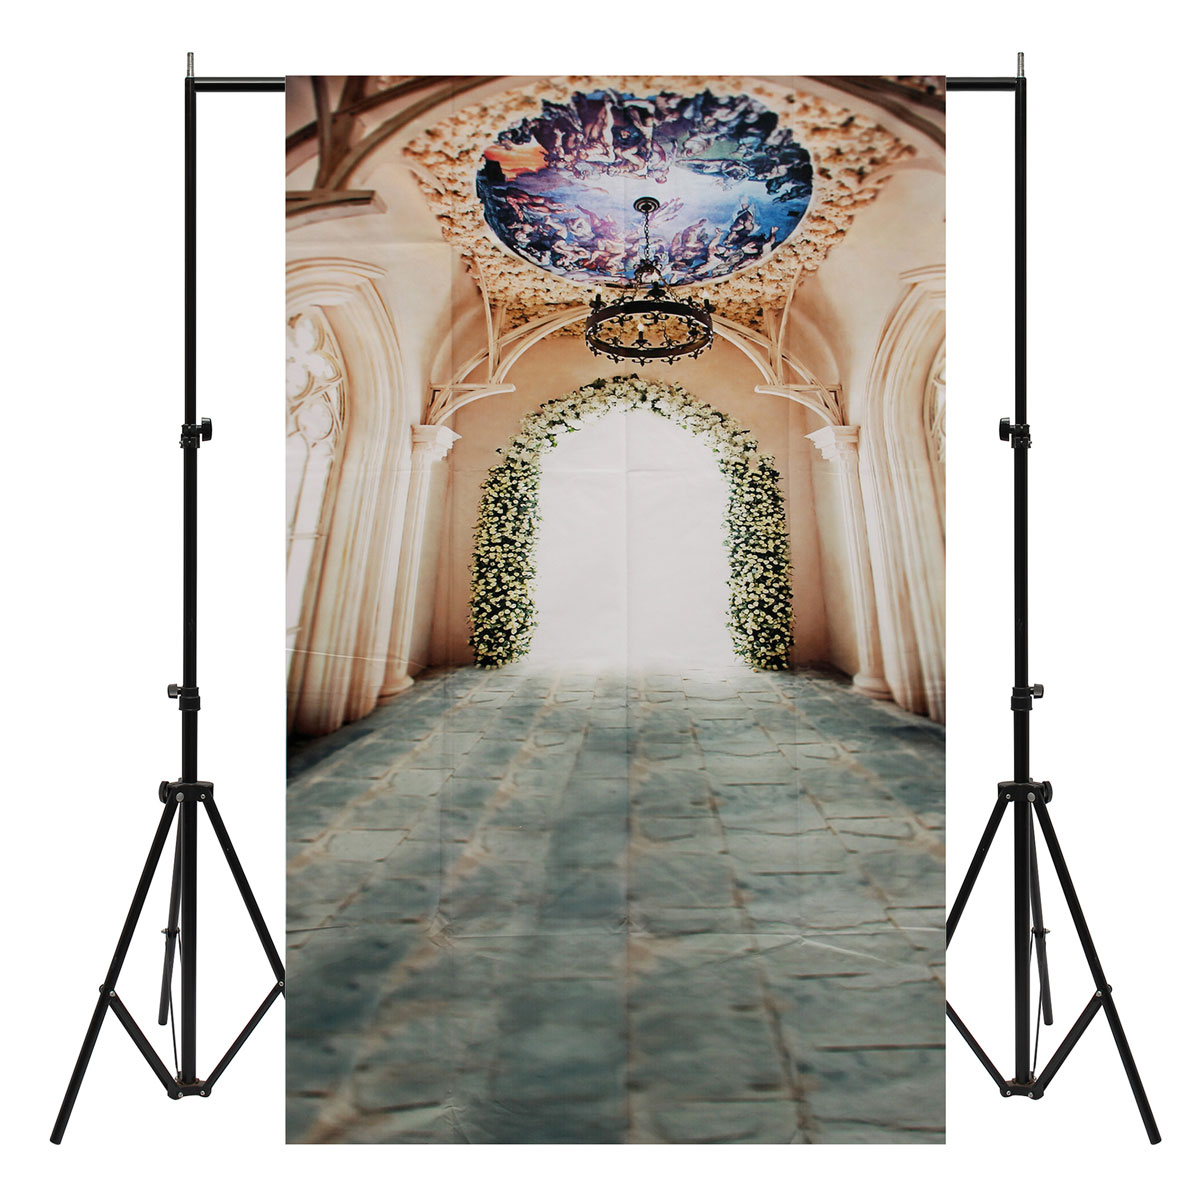 3x5ft Vinyl Hall Palace Photography Background Backdrop Photo Studio Prop